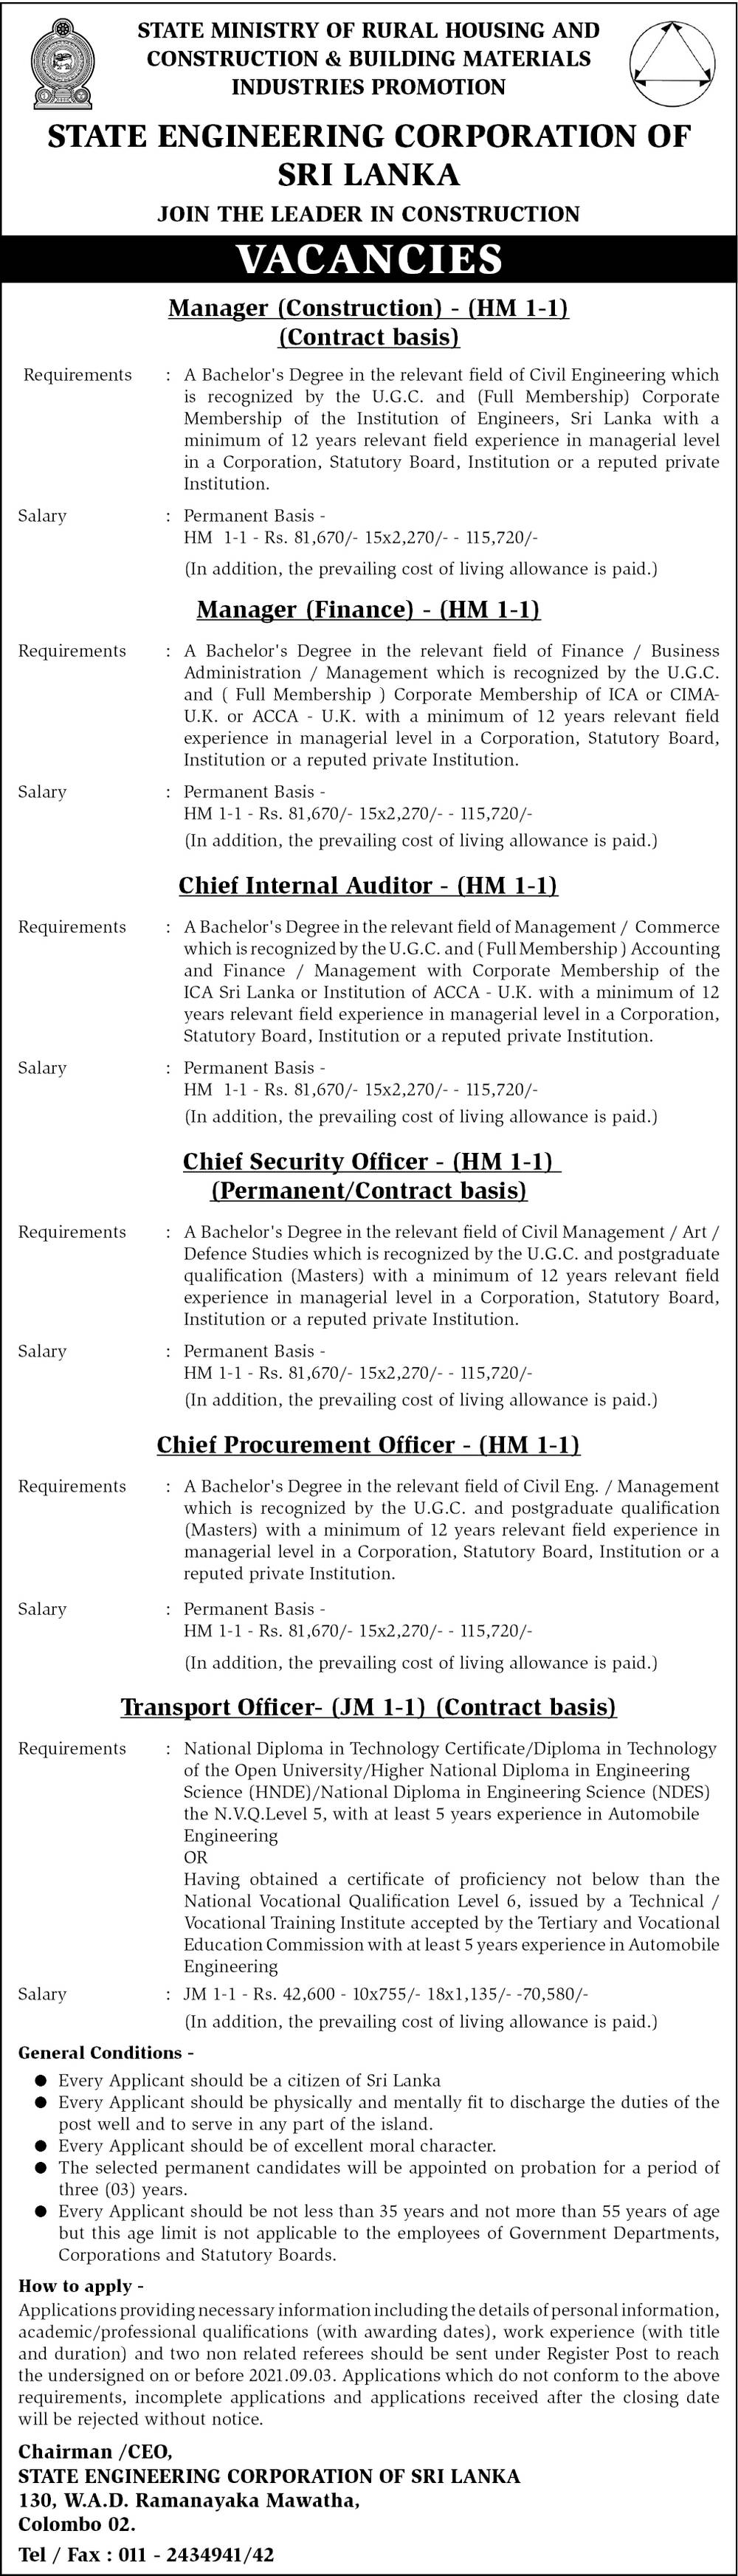 Manager, Chief Internal Auditor,Chief Security Officer, Chief Procurement Officer,  Transport Officer